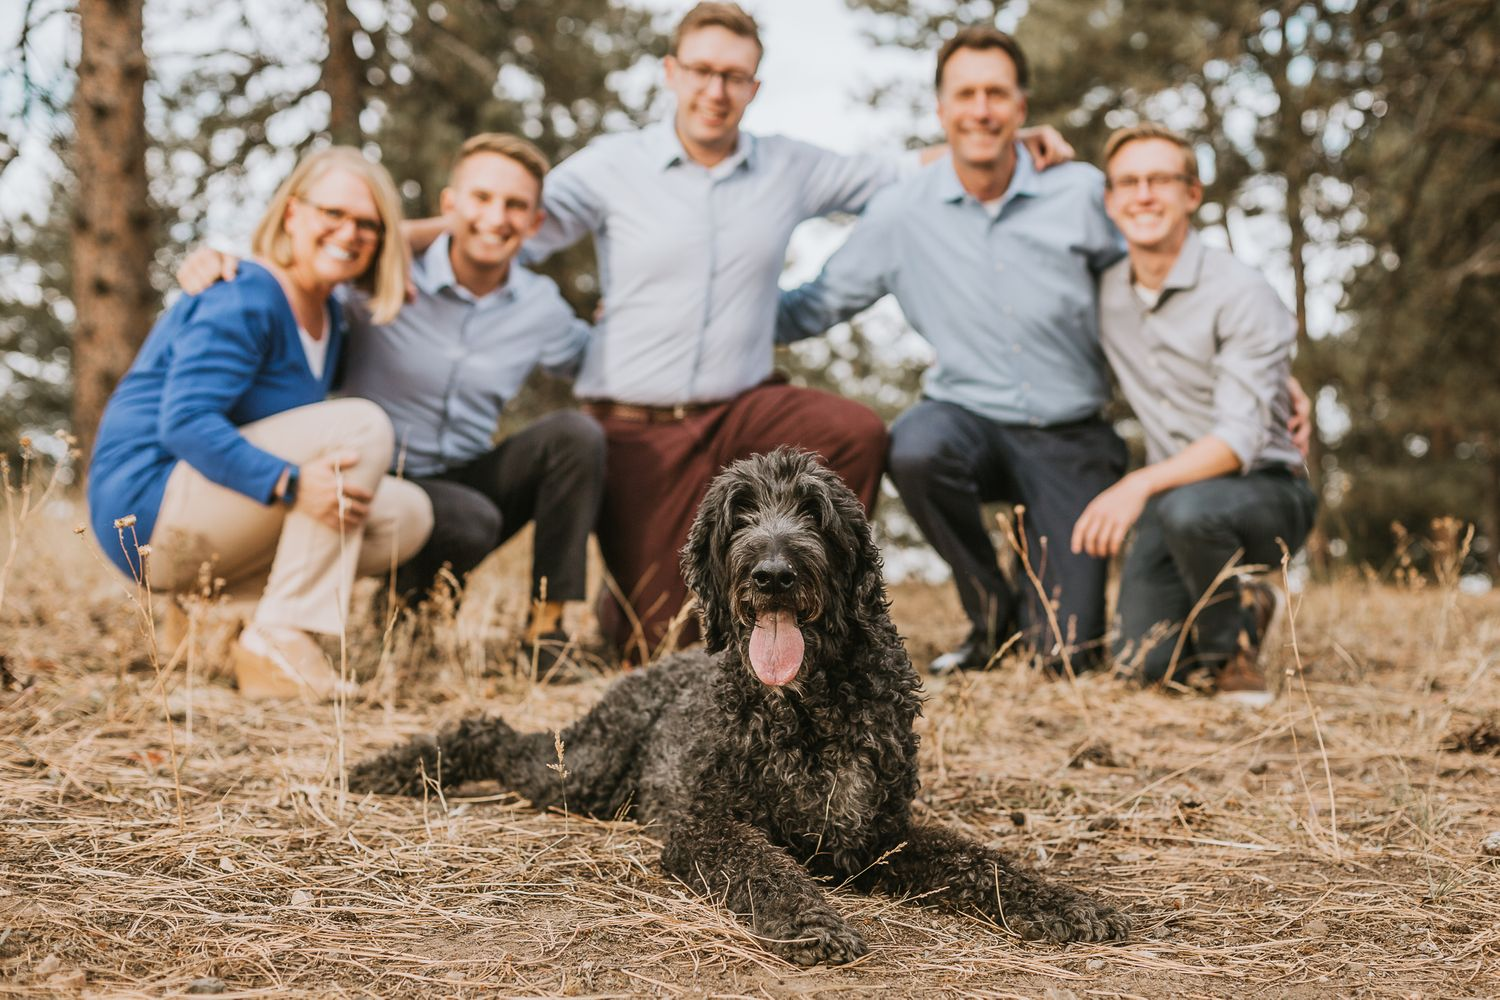 Family poses behind their dog during their Family Photography Session at Mount Falcon Trailhead in Morrison, Colorado.